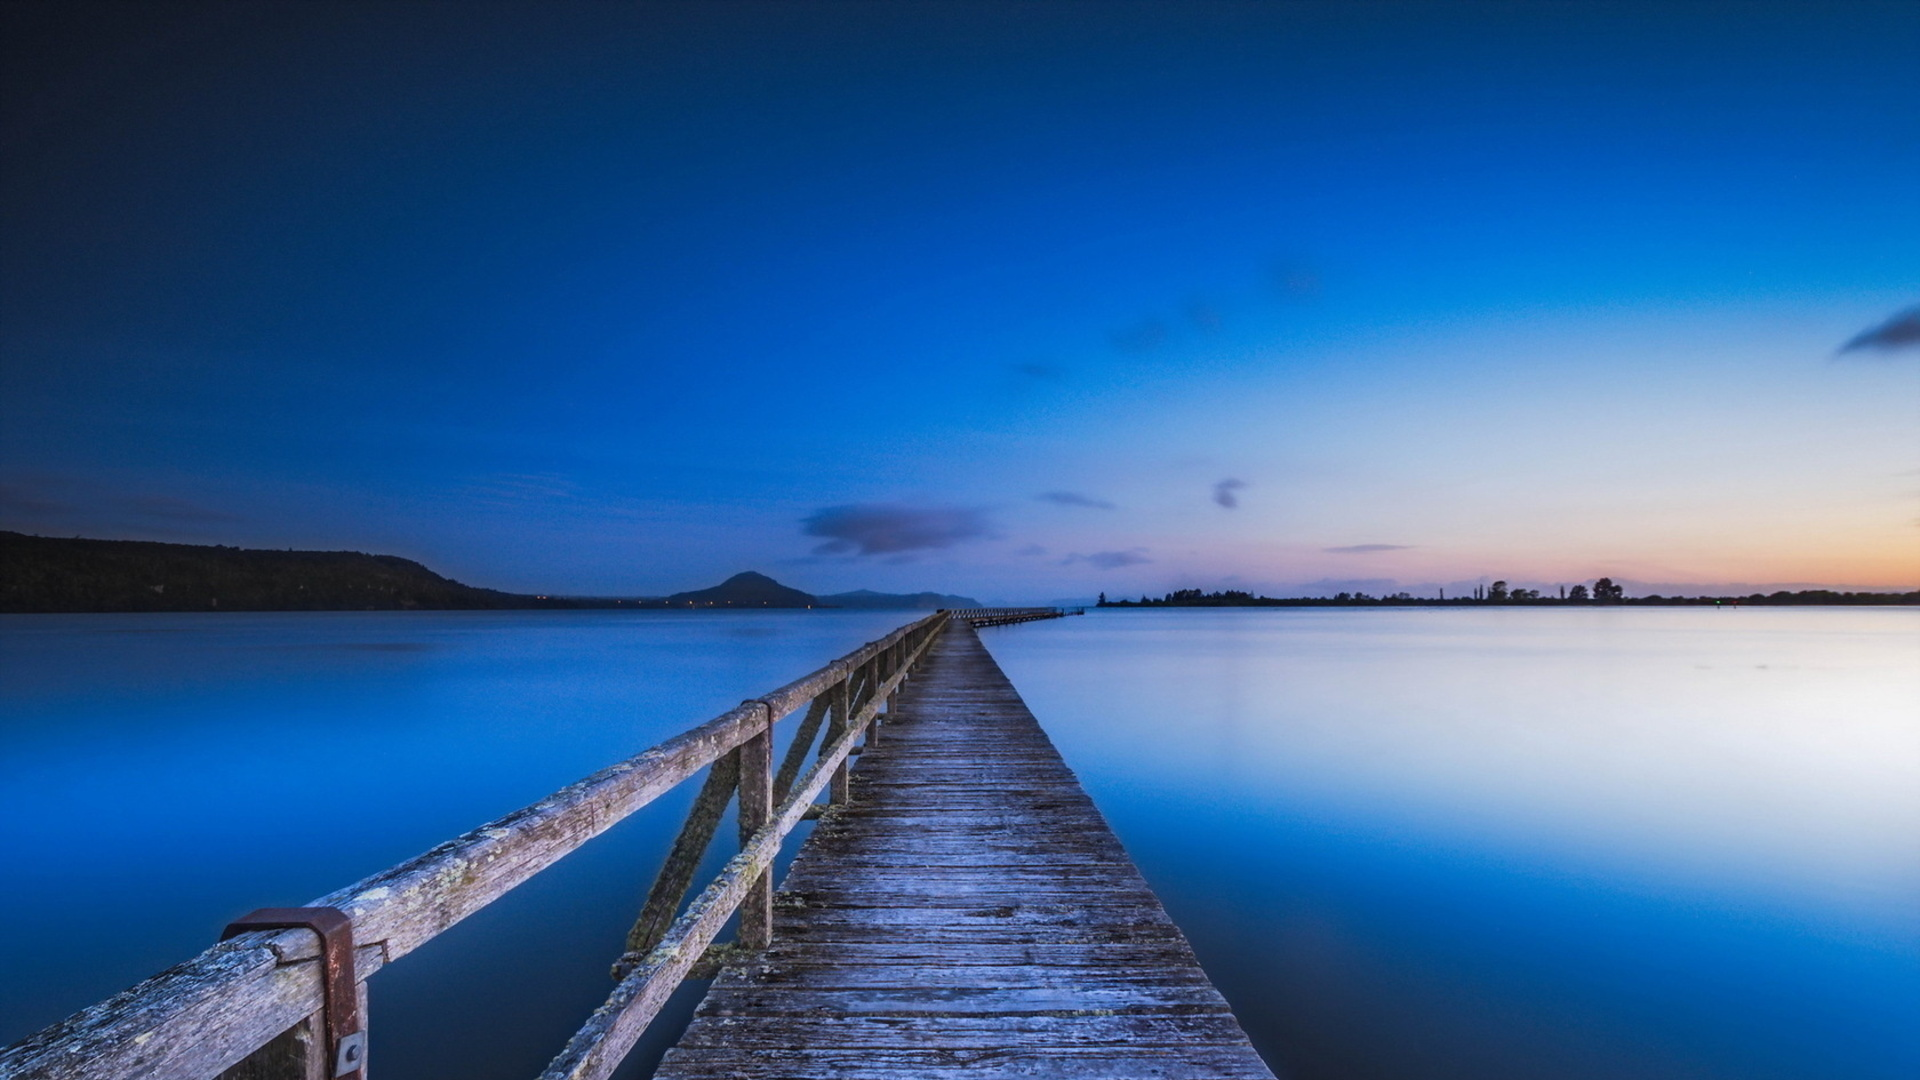 Stunning Blue Dusk Wallpaper